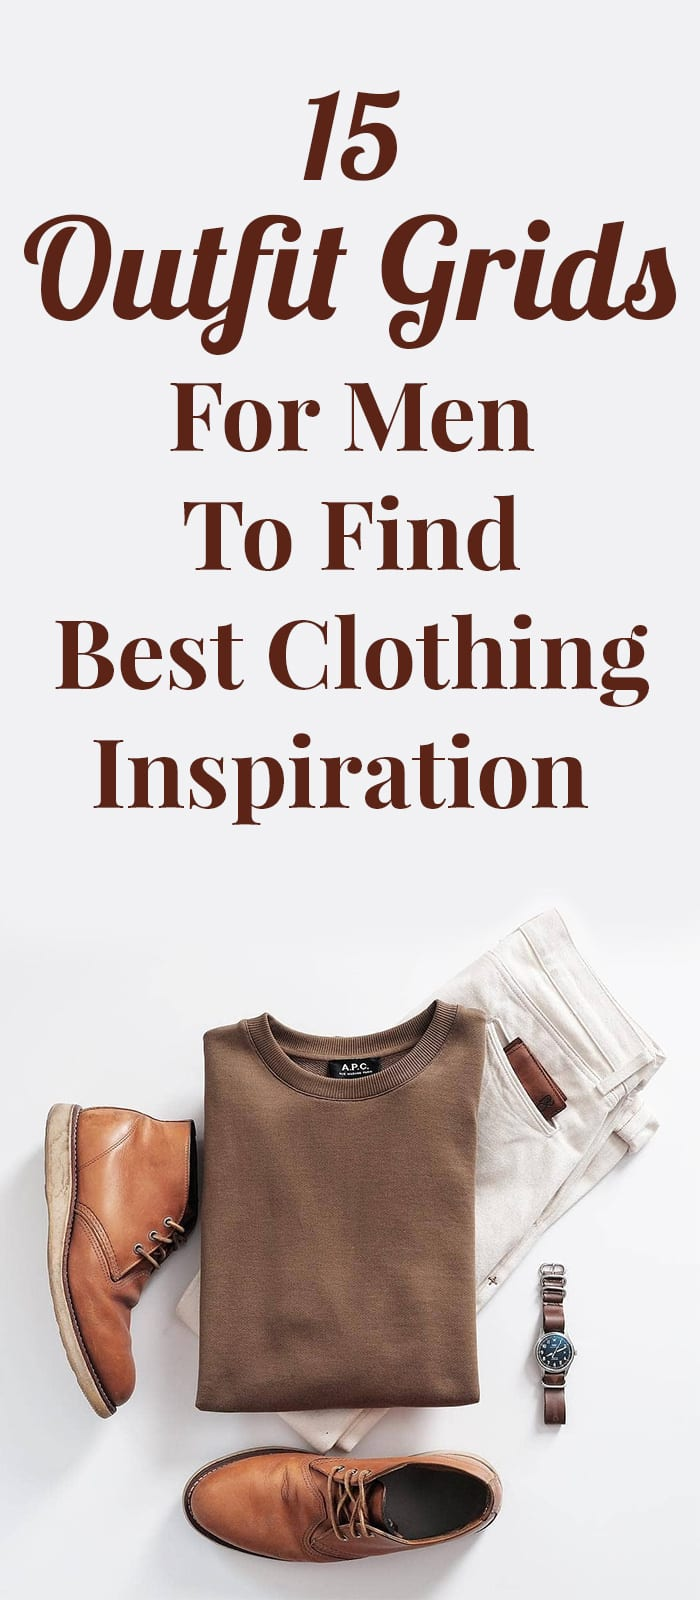 8f71fe3647 15 Reasons Why Men Should Refer Outfit Grids For Styling